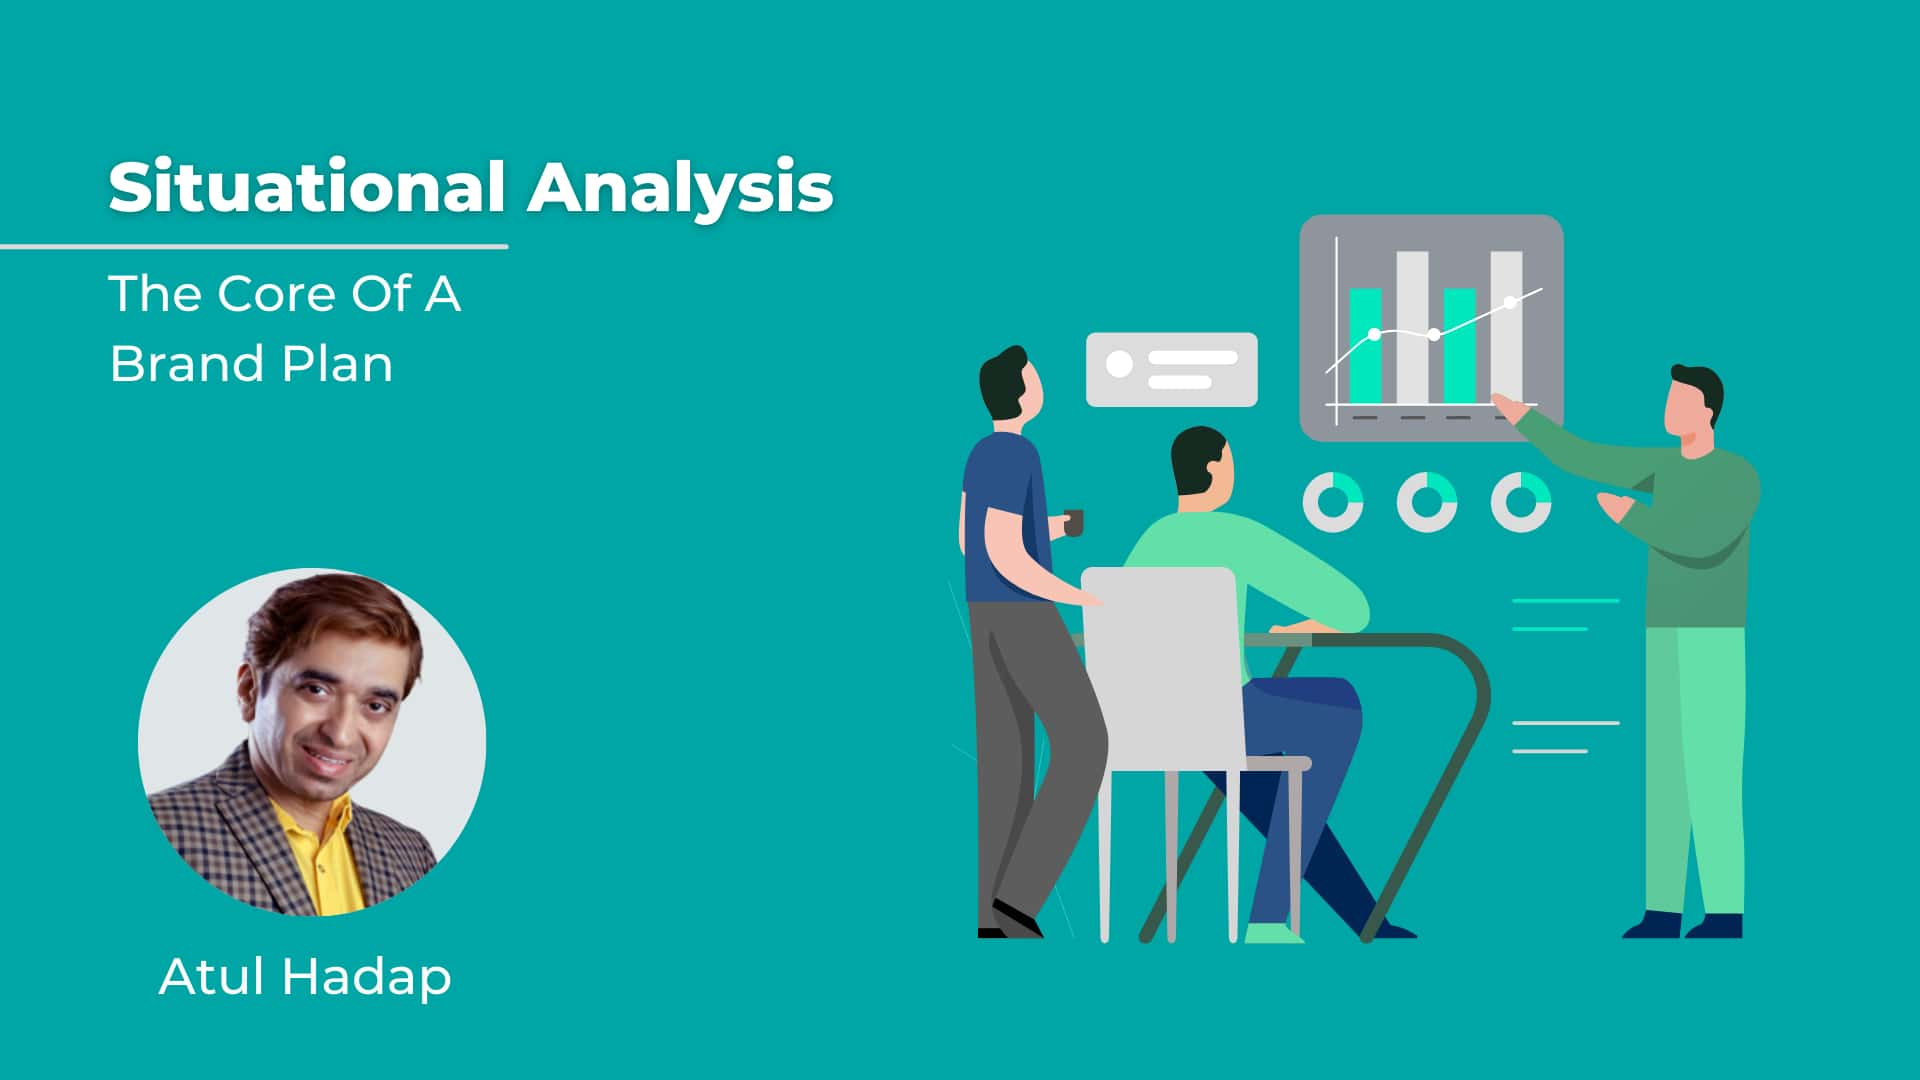 Situational Analysis - The Core Of A Brand Plan